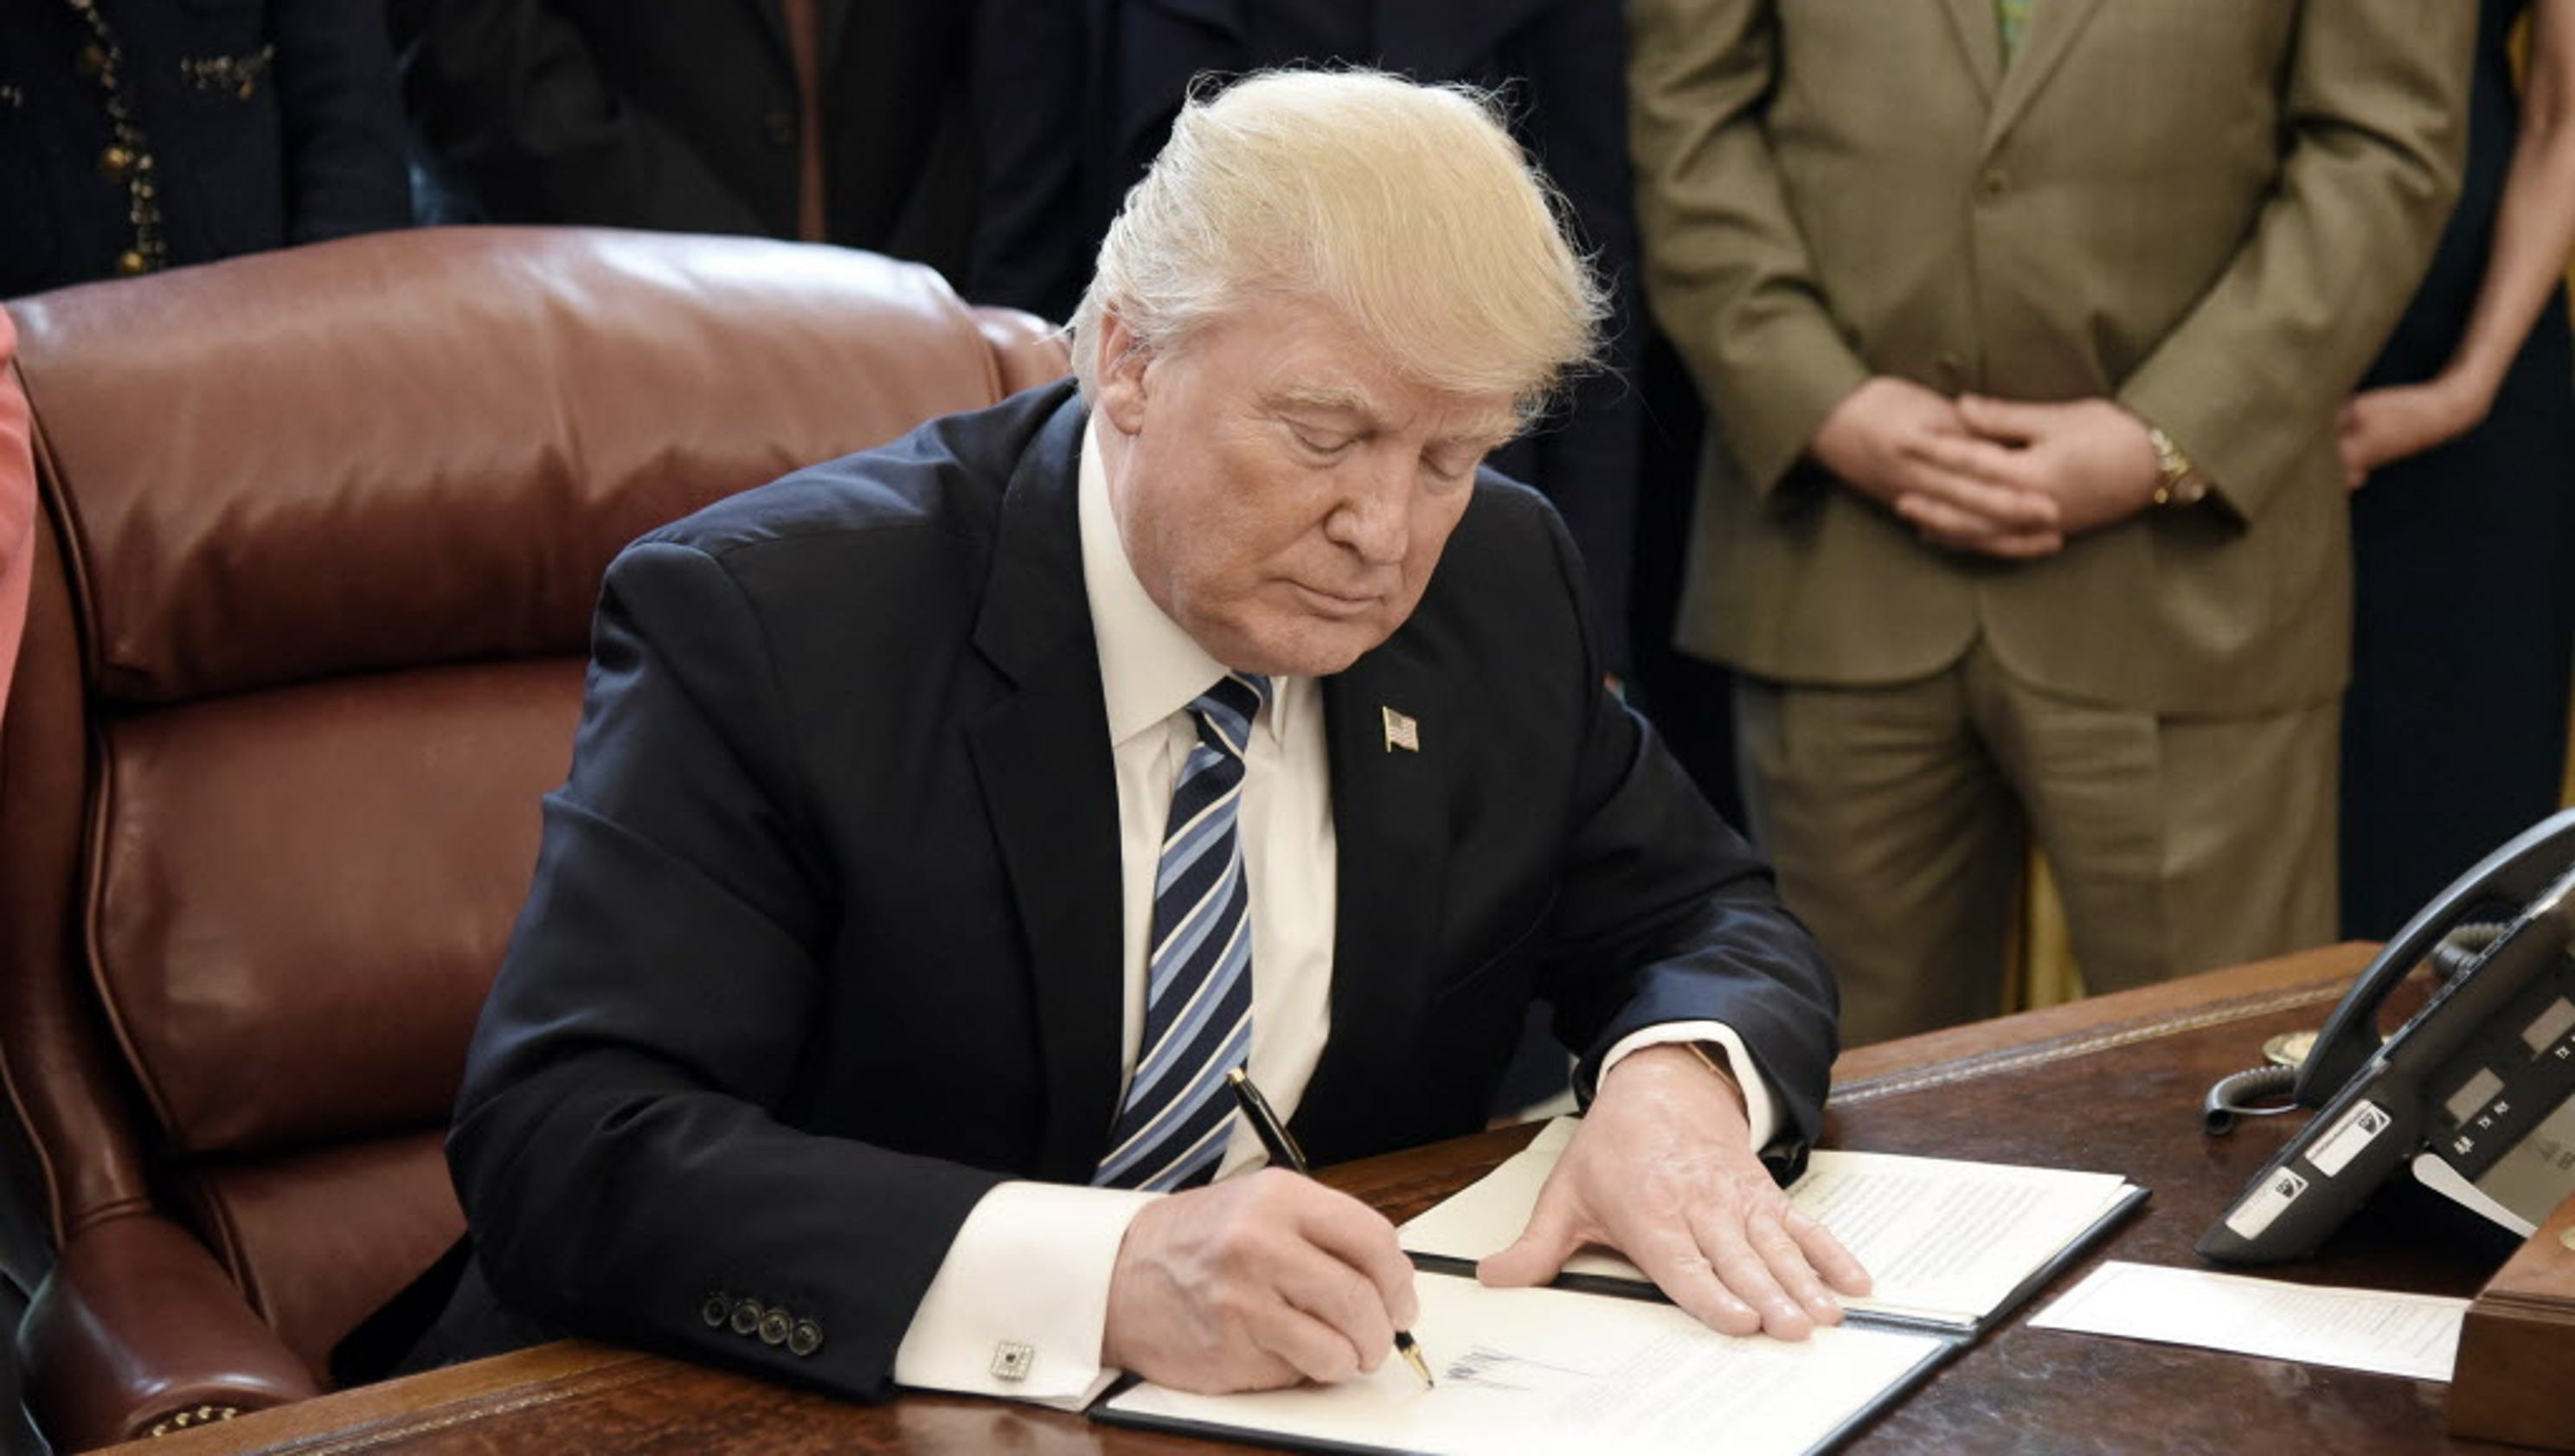 Make America great again by resigning: Second Look